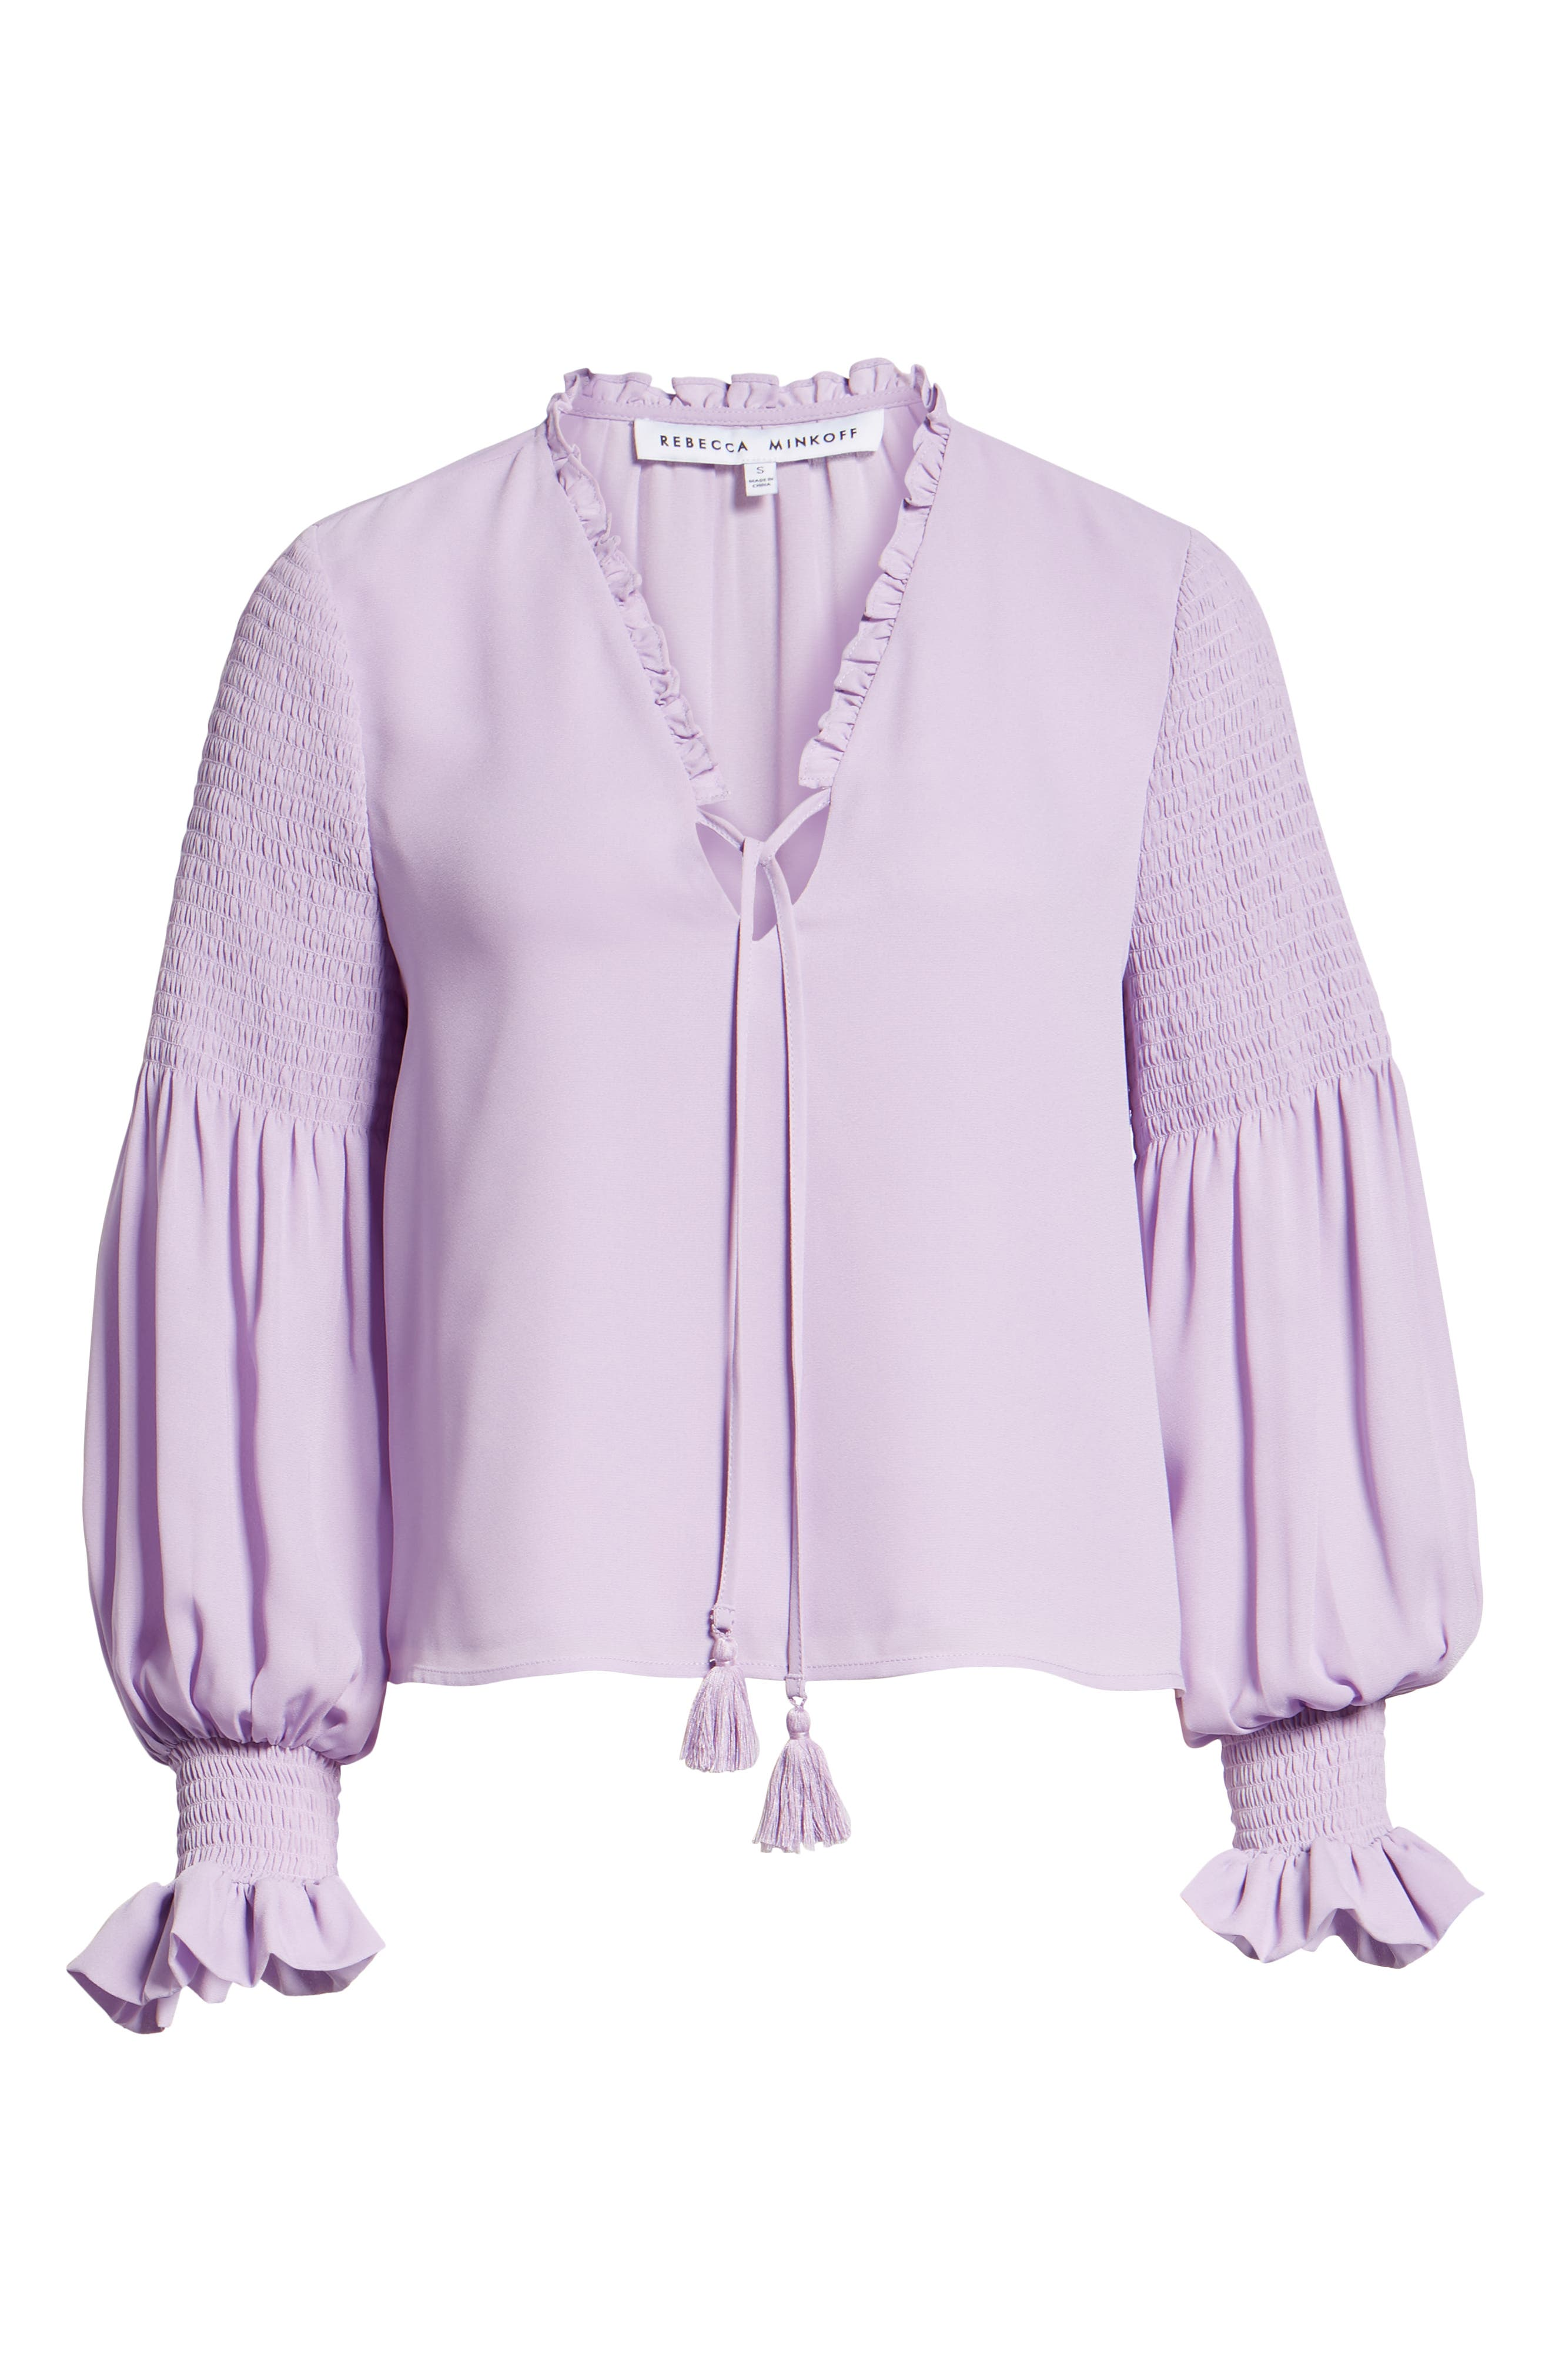 Penelope Ruffle Top,                             Alternate thumbnail 6, color,                             LILAC